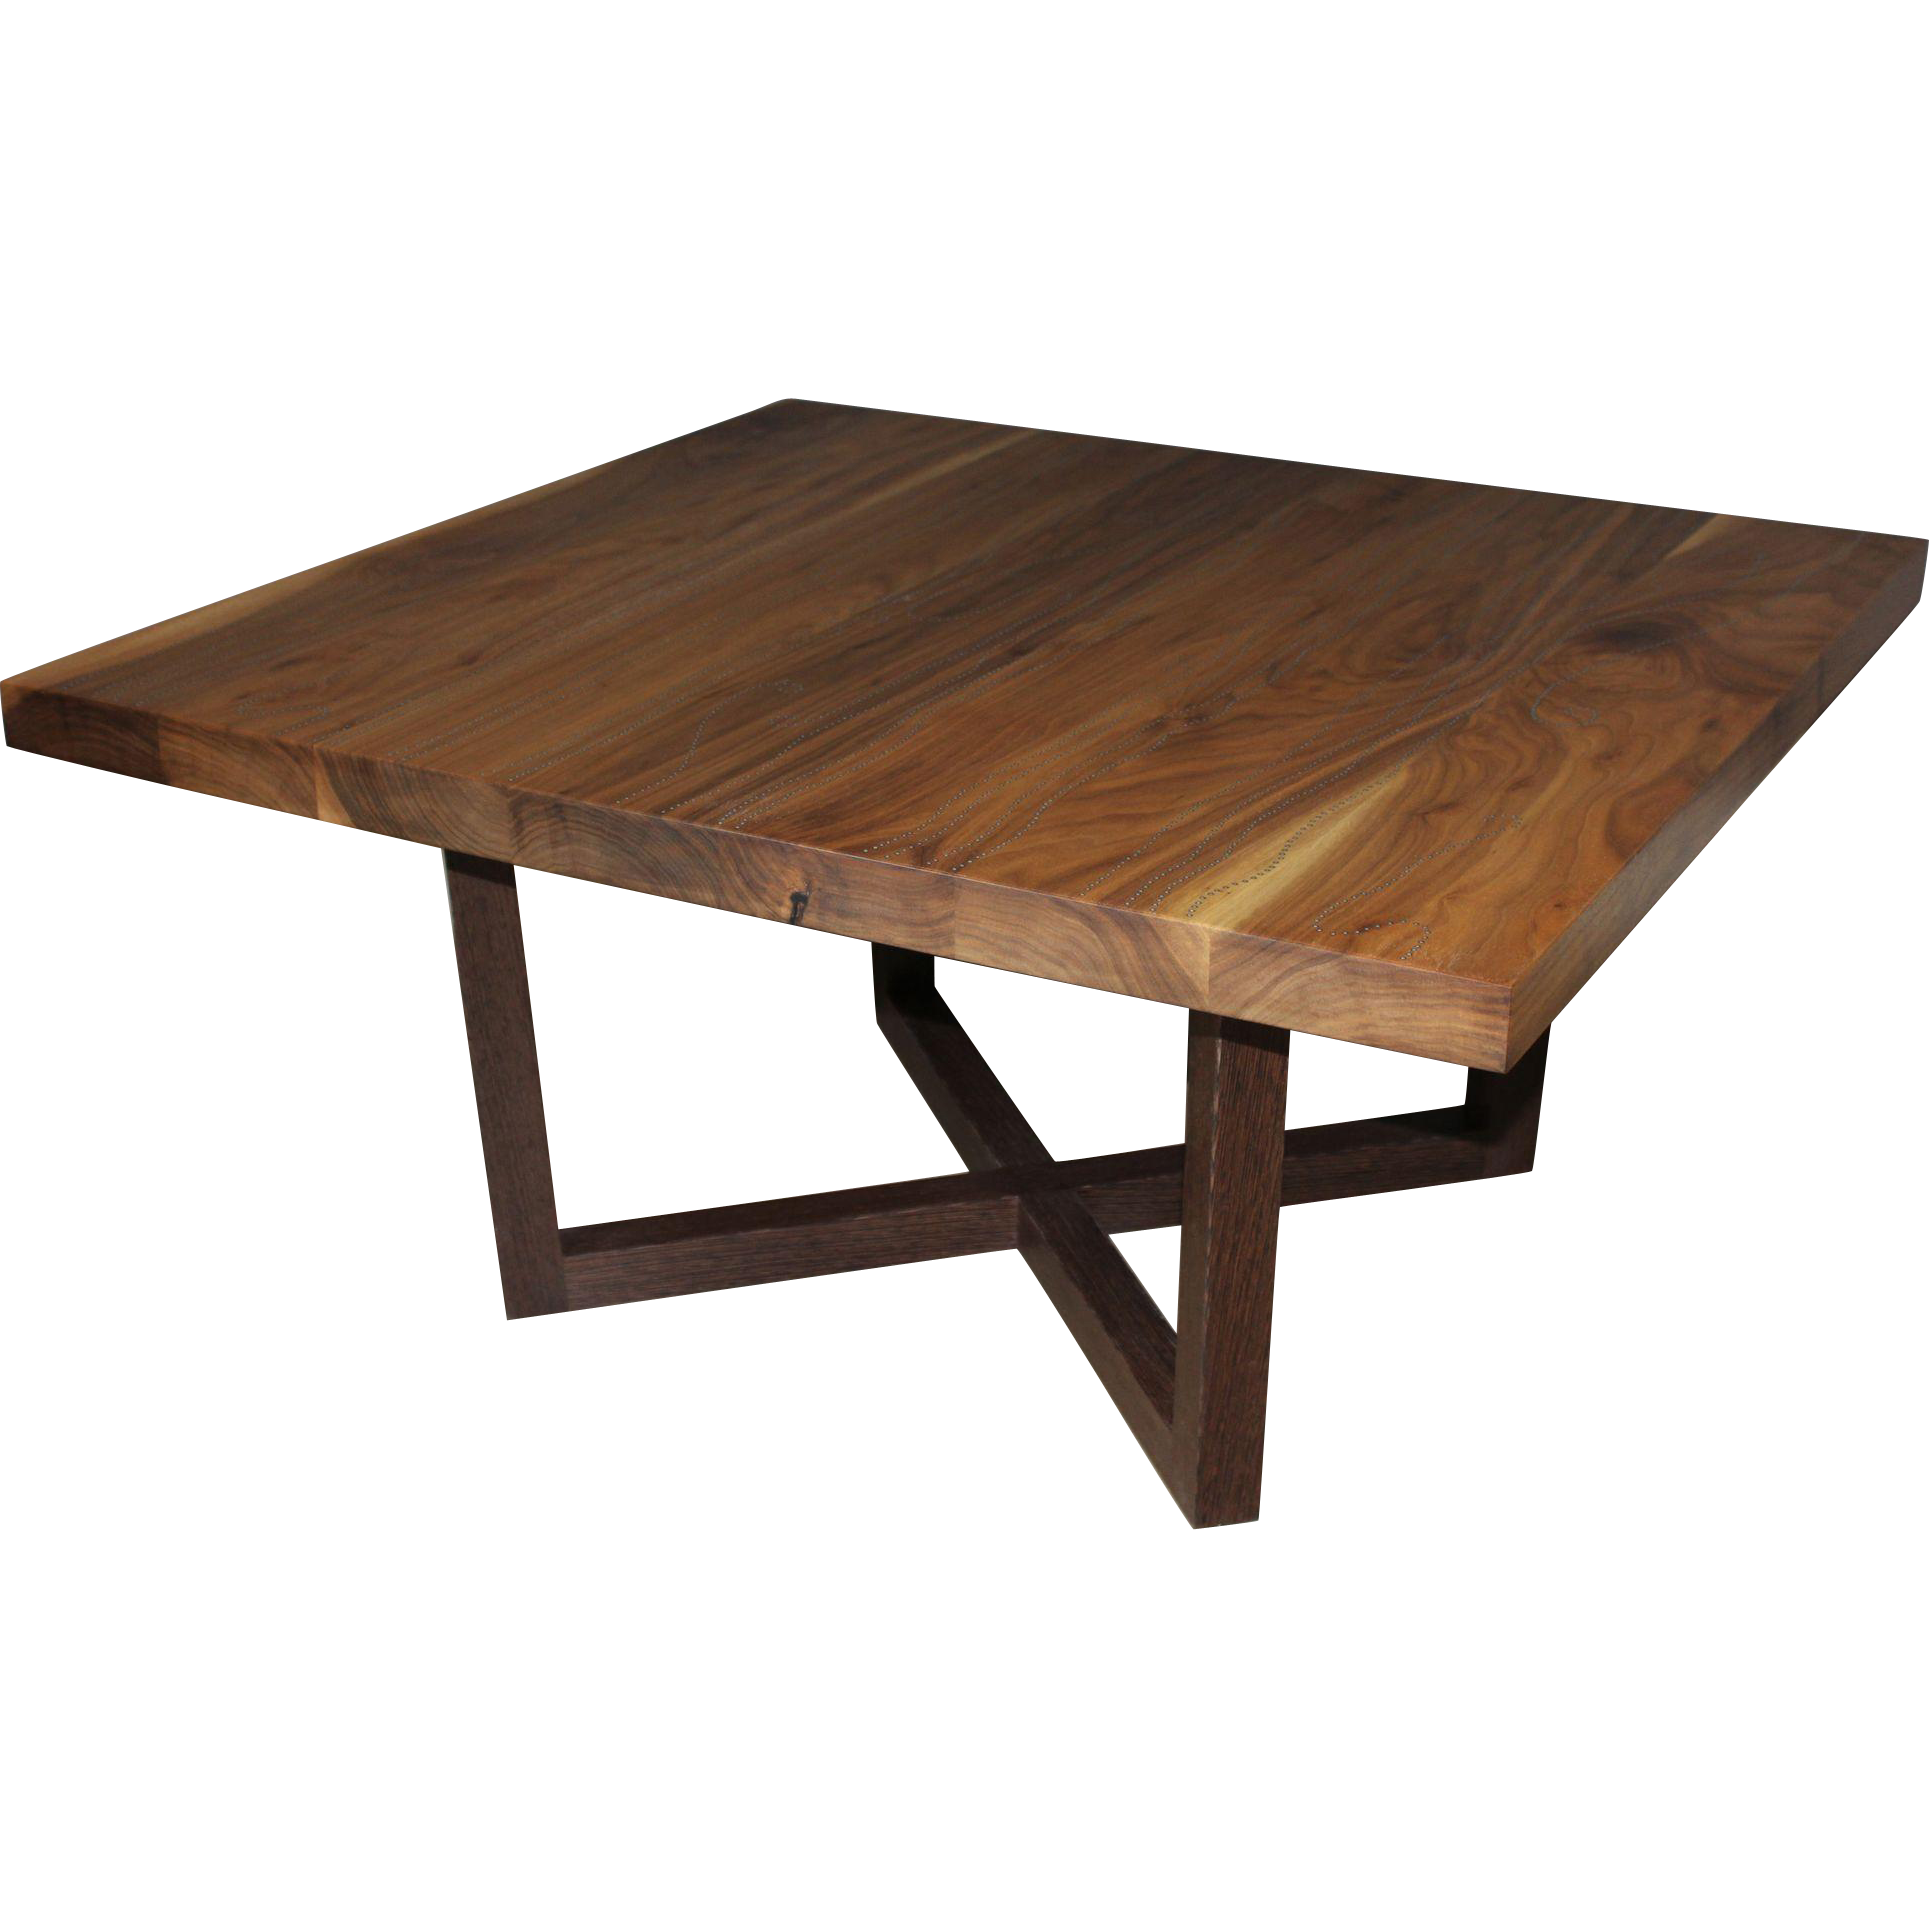 Peter Sandback Modernist Low Square Table in Bleached Walnut and Wenge